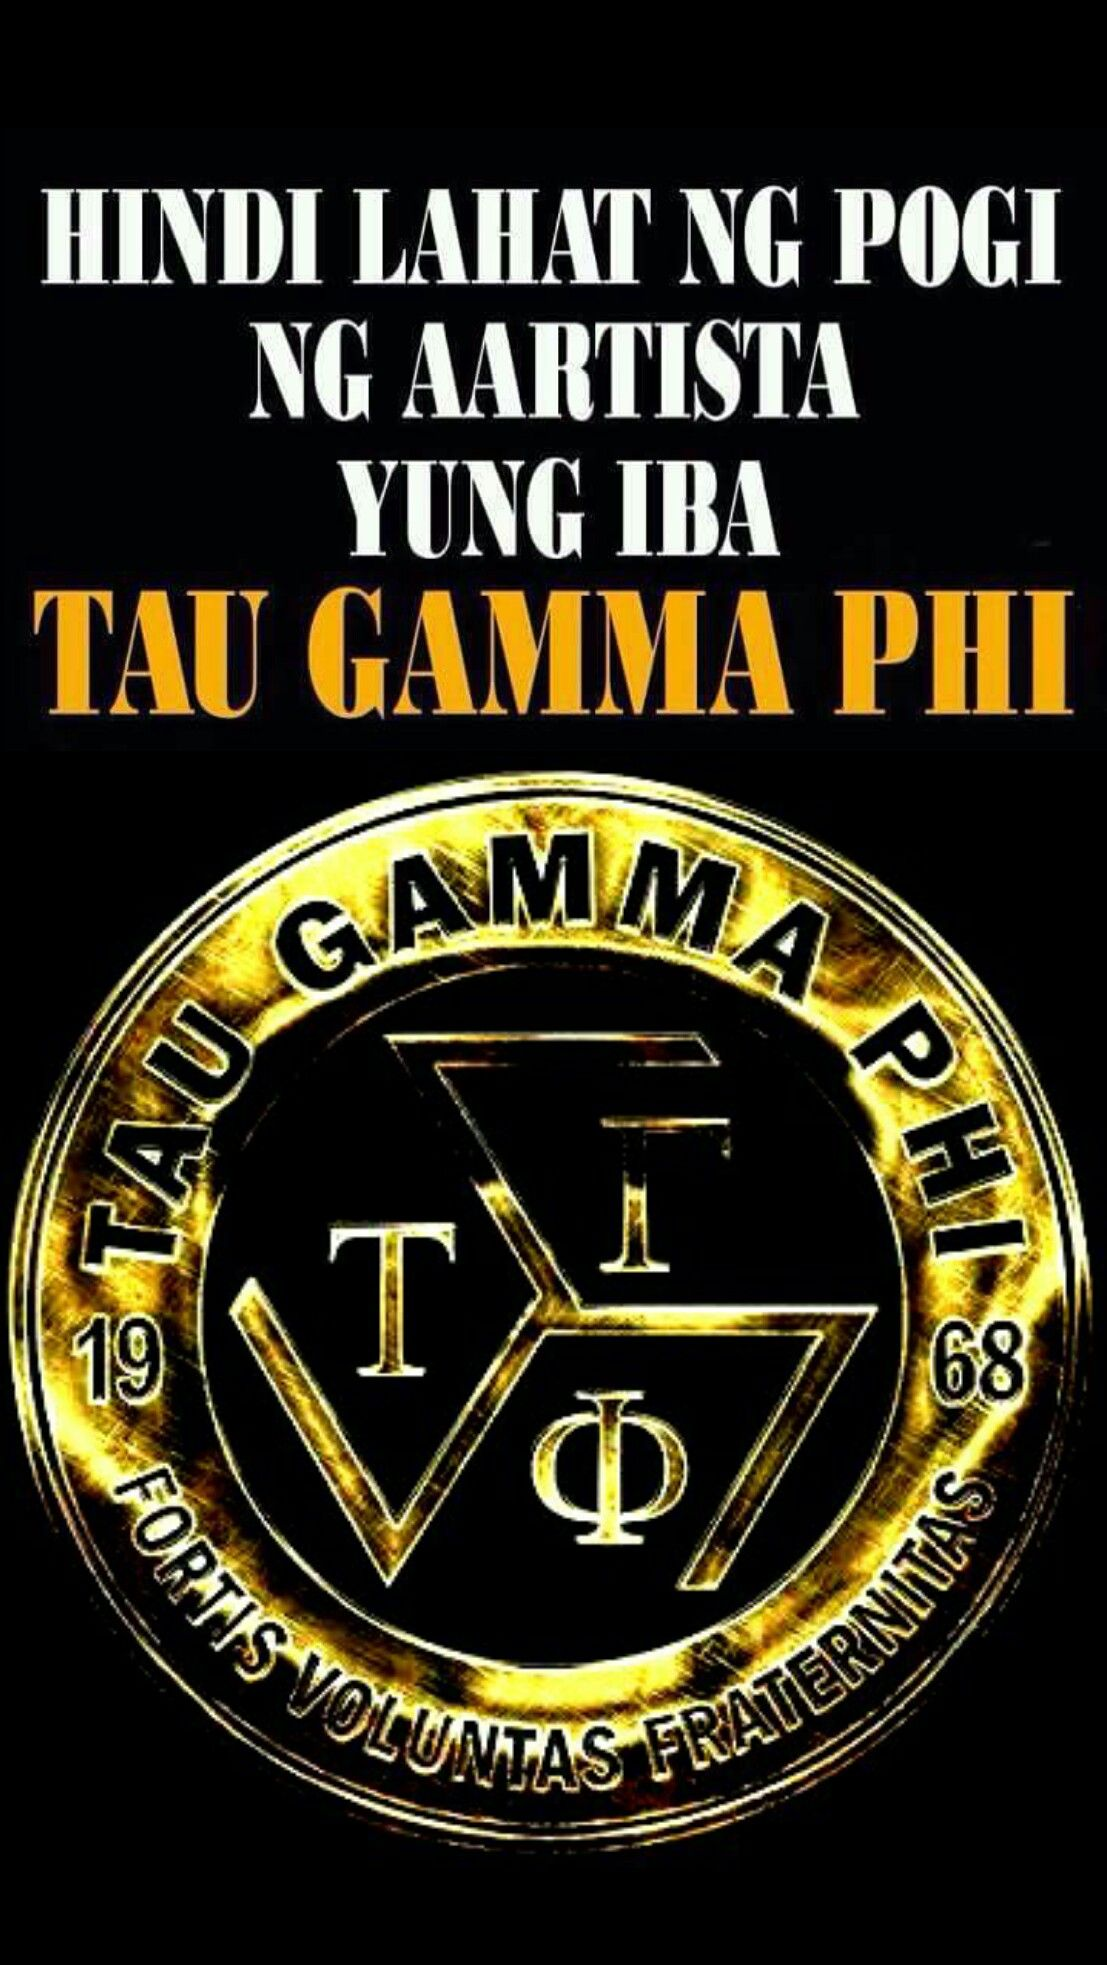 Taugamma Triskelion Black Wallpaper Android Iphone 49 Tau Gamma Star Of David Tattoo Gamma Phi